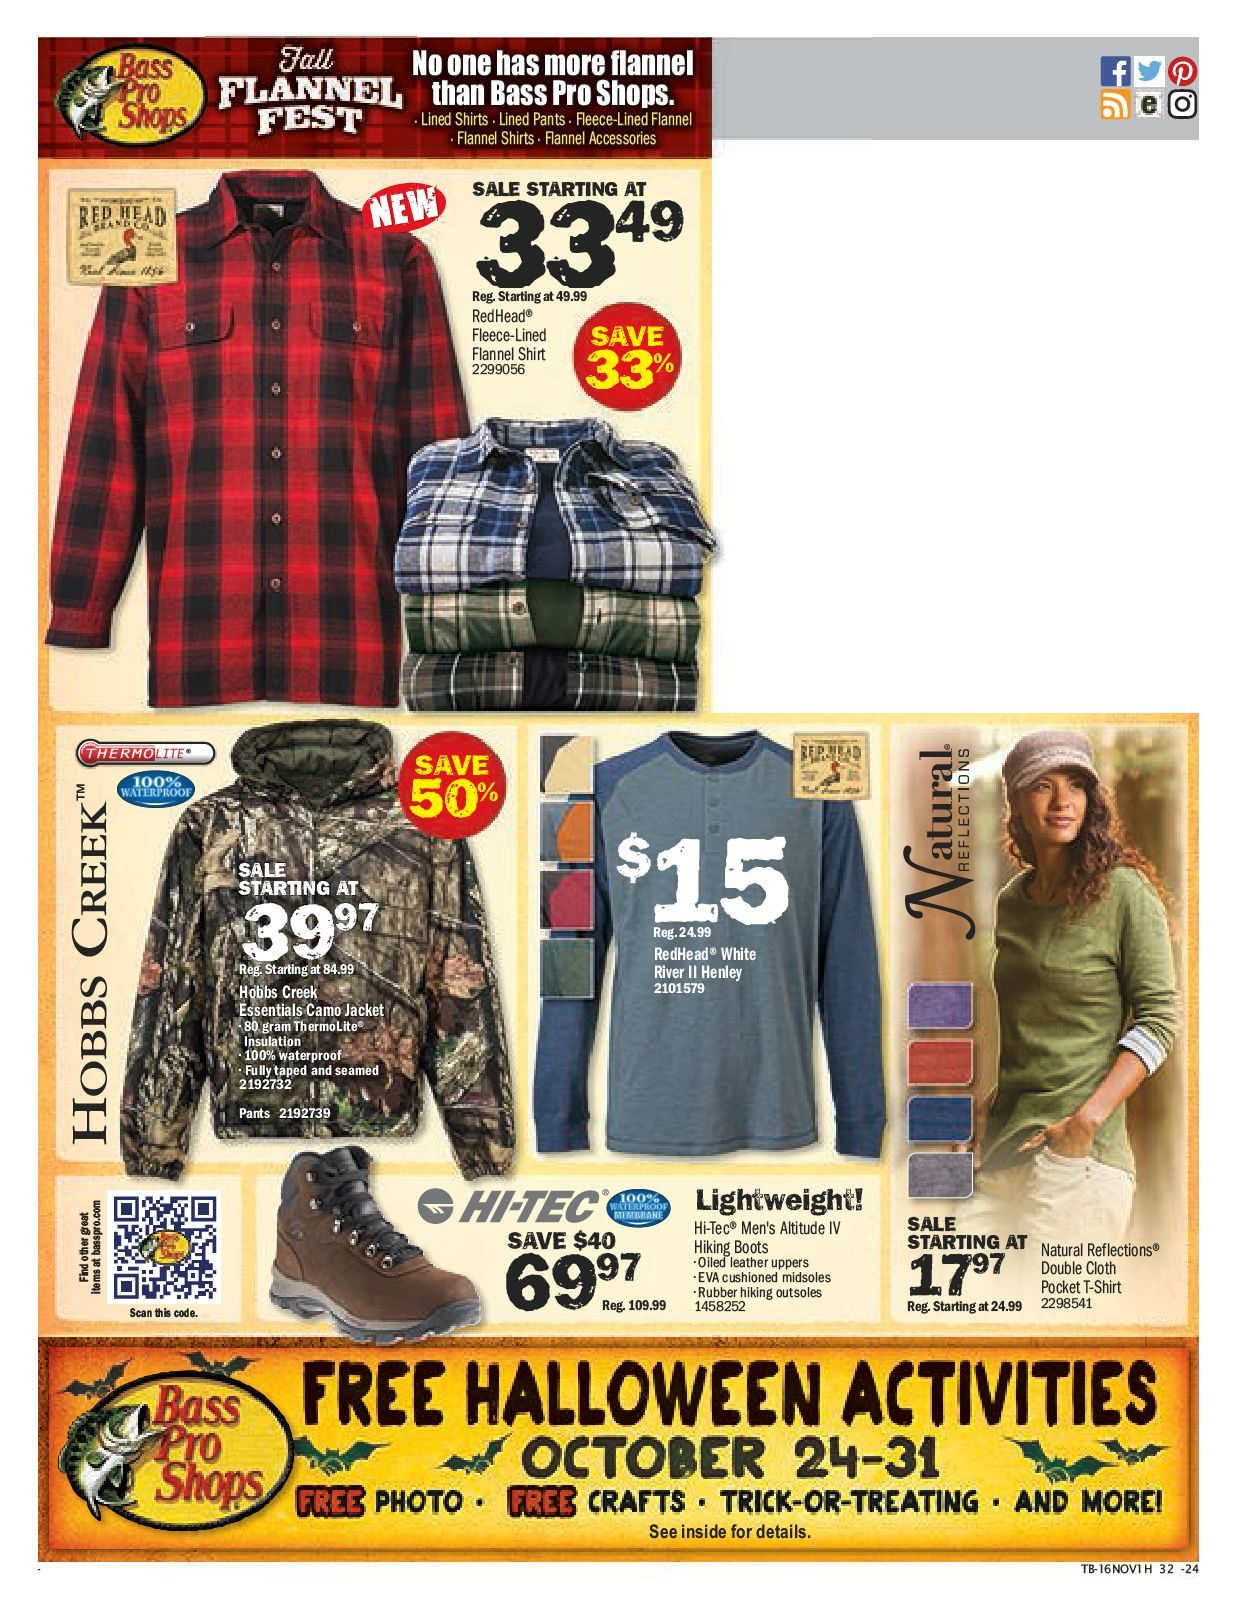 Bass Pro Shops Weekly Flyer - Fall Harvest Sale! - Oct 21